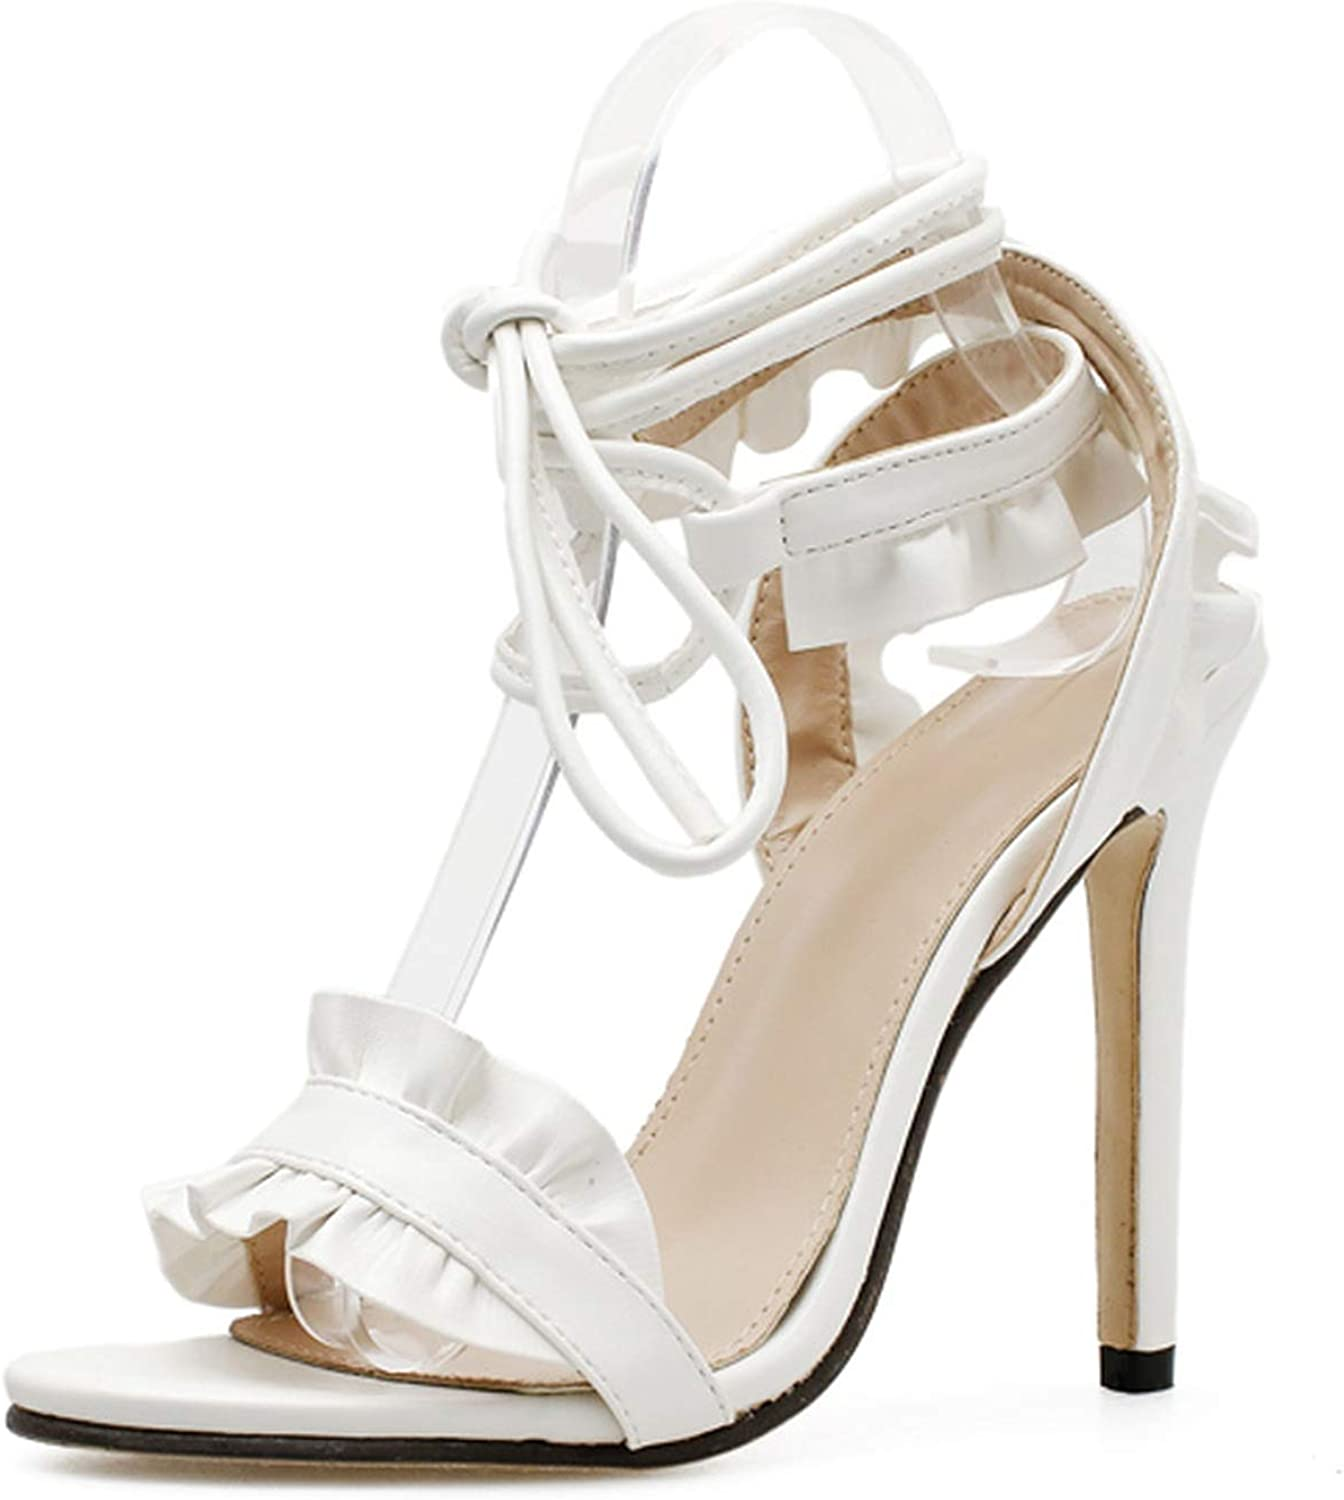 Ches Ankle Strap High Heels Sandals Women Pumps Thin Heel Ruffle Lace-Up Summer shoes Fashion Pompes Women White Wedding